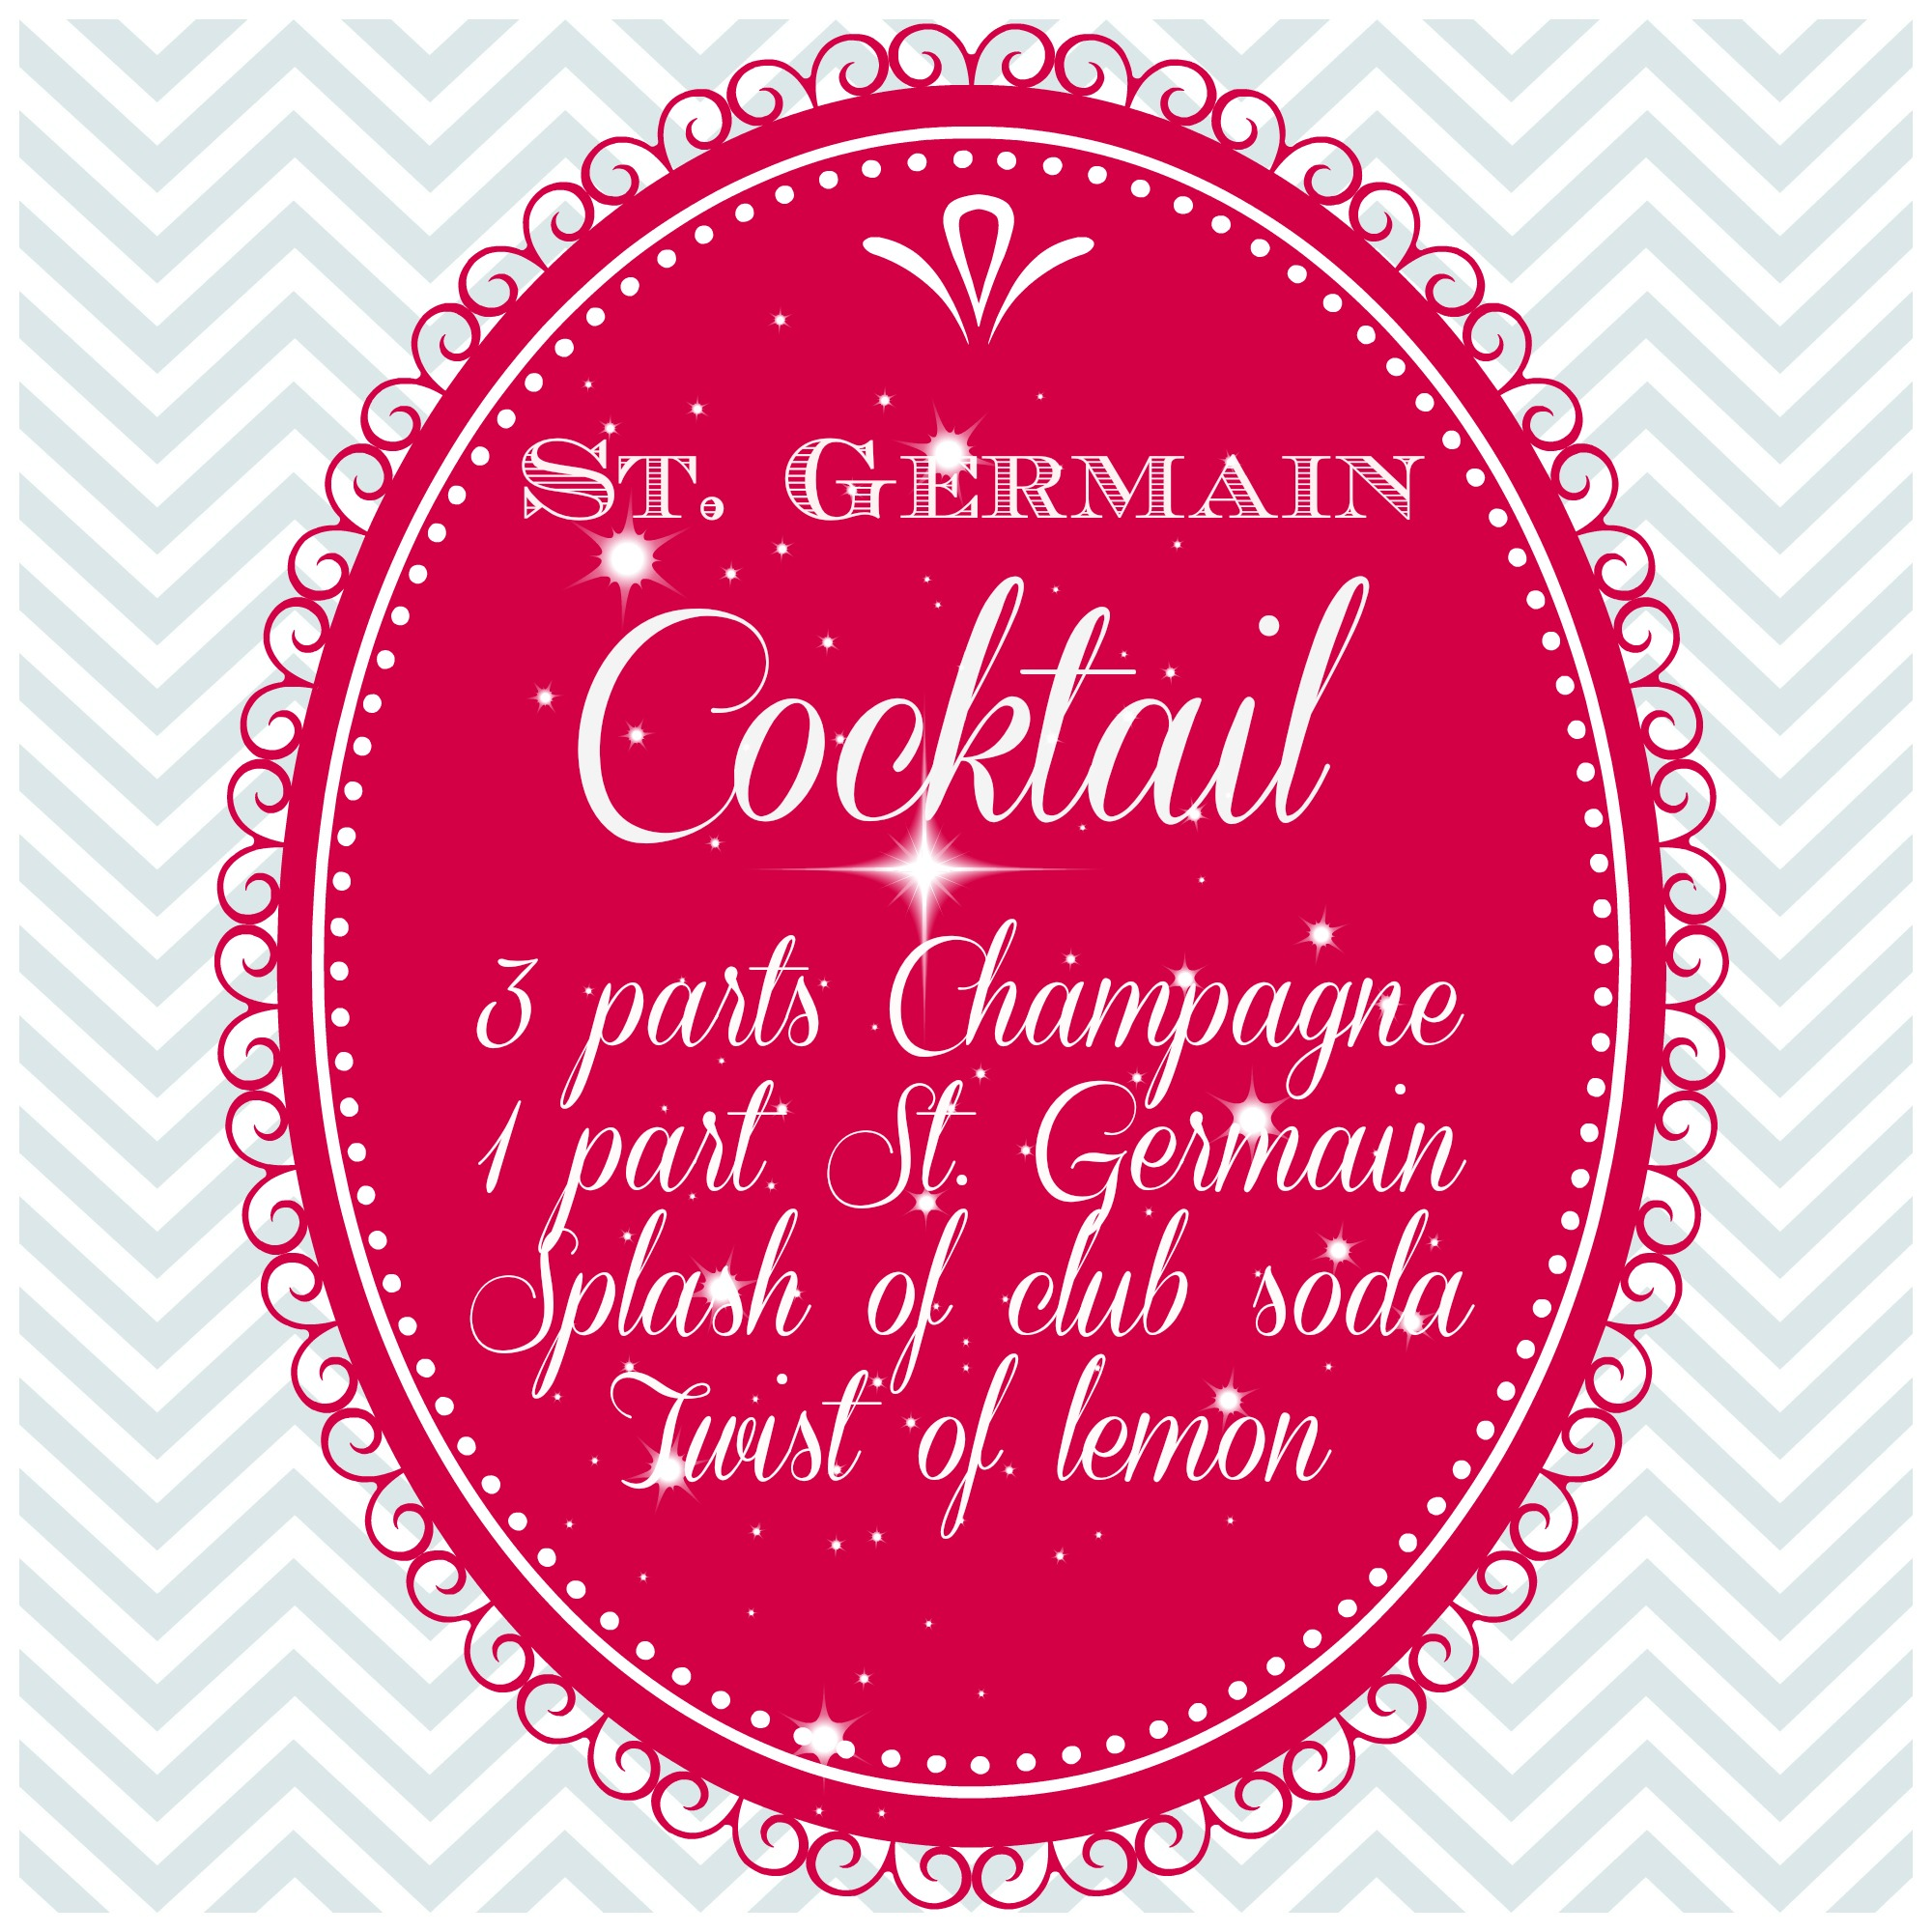 st germain cocktail recipe 2